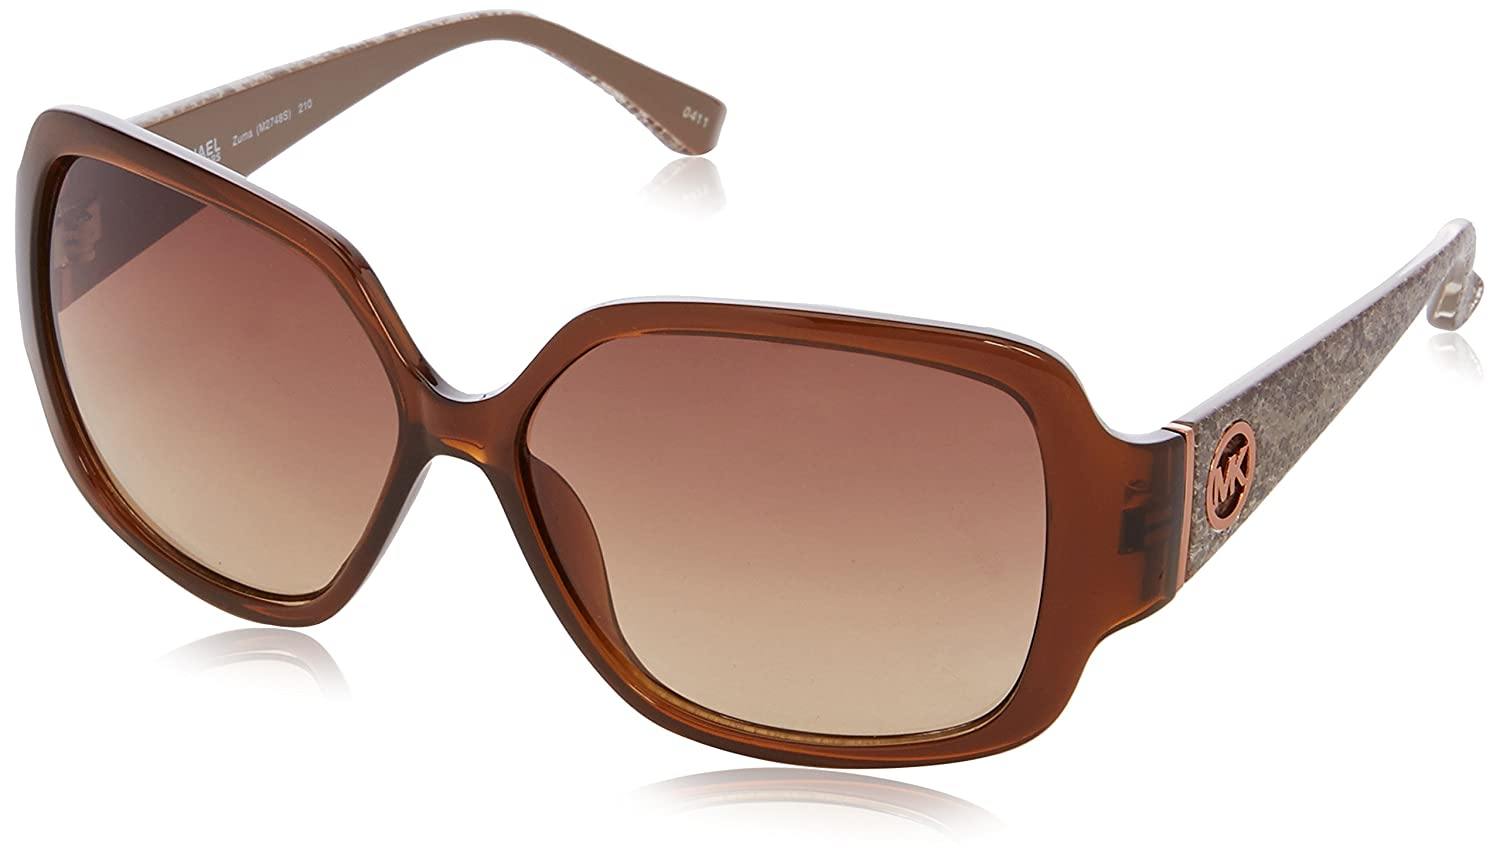 f50676943e5a Michael Kors M2748S Zuma Wayfarer Sunglasses, 025 Havana Tortoise:  Amazon.co.uk: Clothing